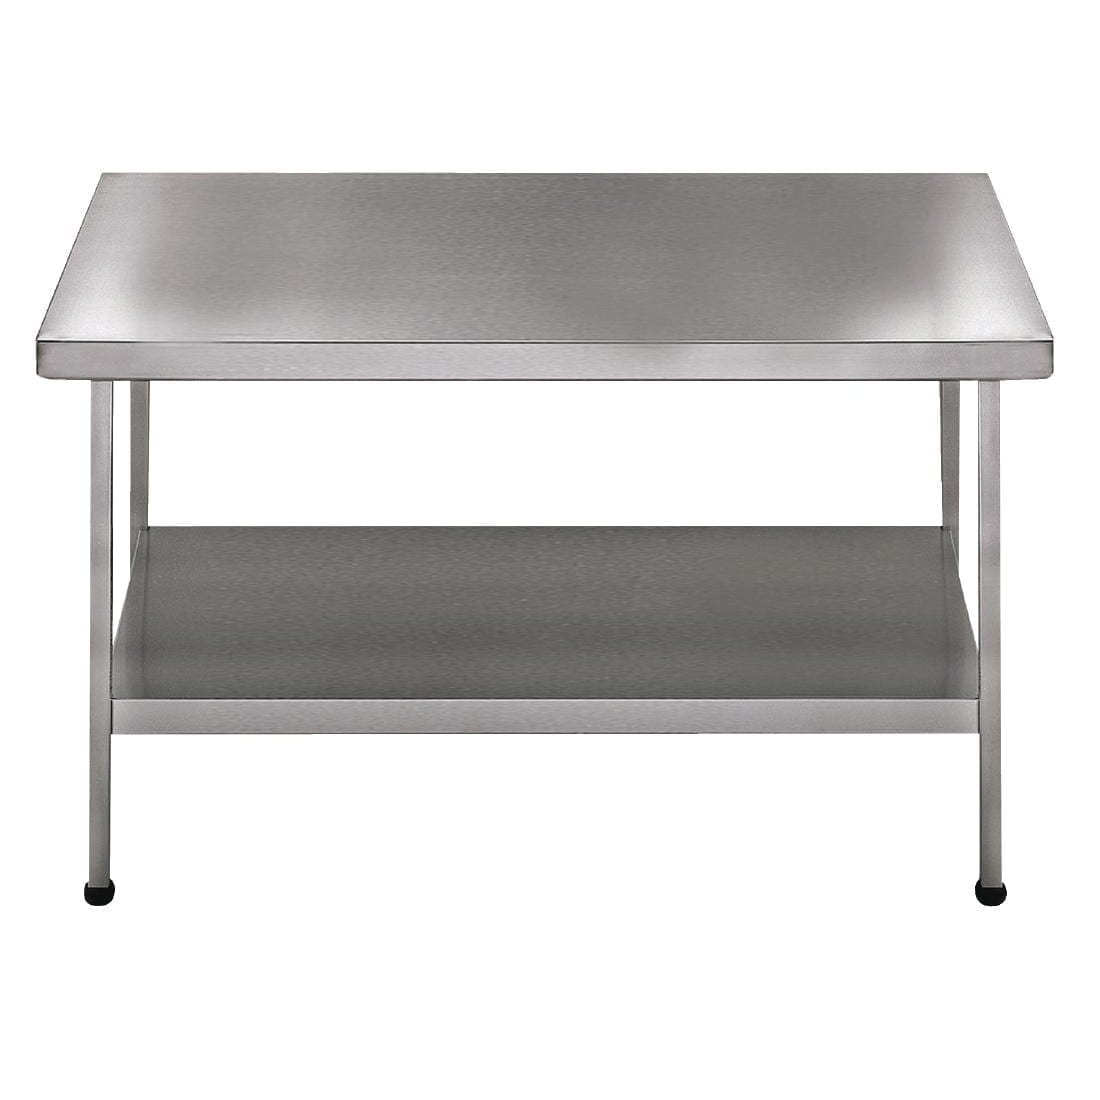 Sissons Centre Table St/St - 900x650mm F/Assembled (Direct)-0